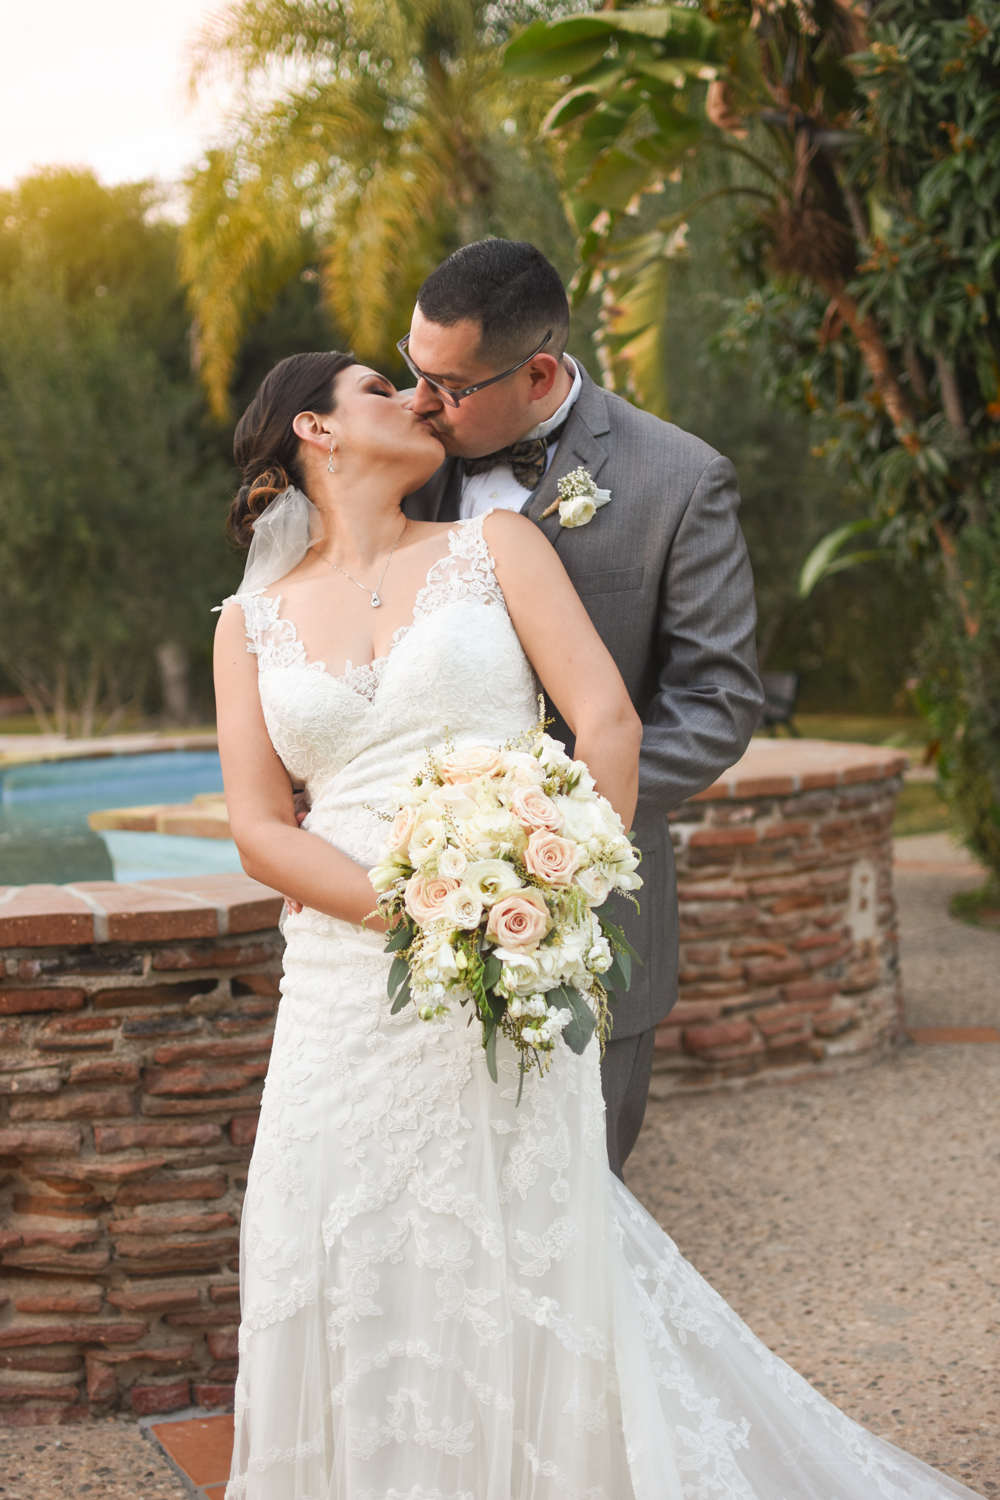 Bride and Groom Kiss - White Bouquet